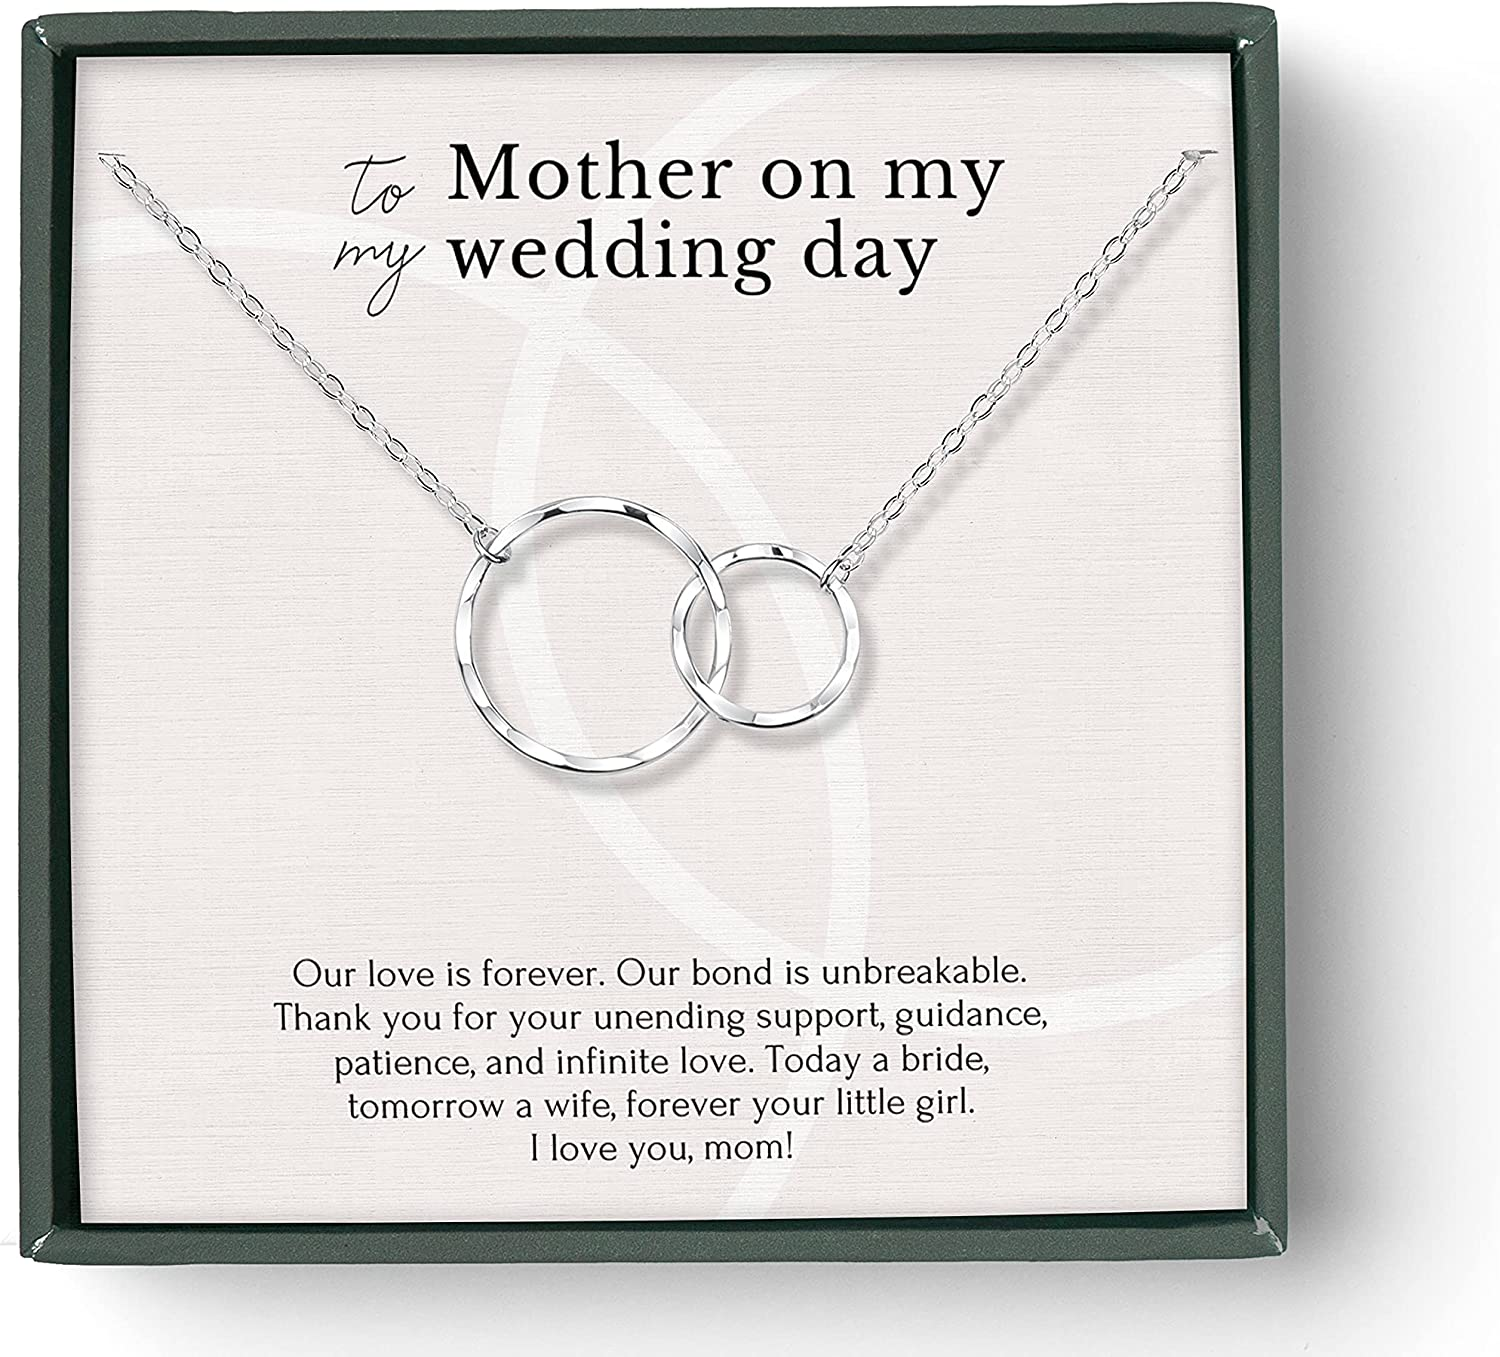 Necklace Gift for mom Regular store on wedding day the Free Shipping New b from mother of bride